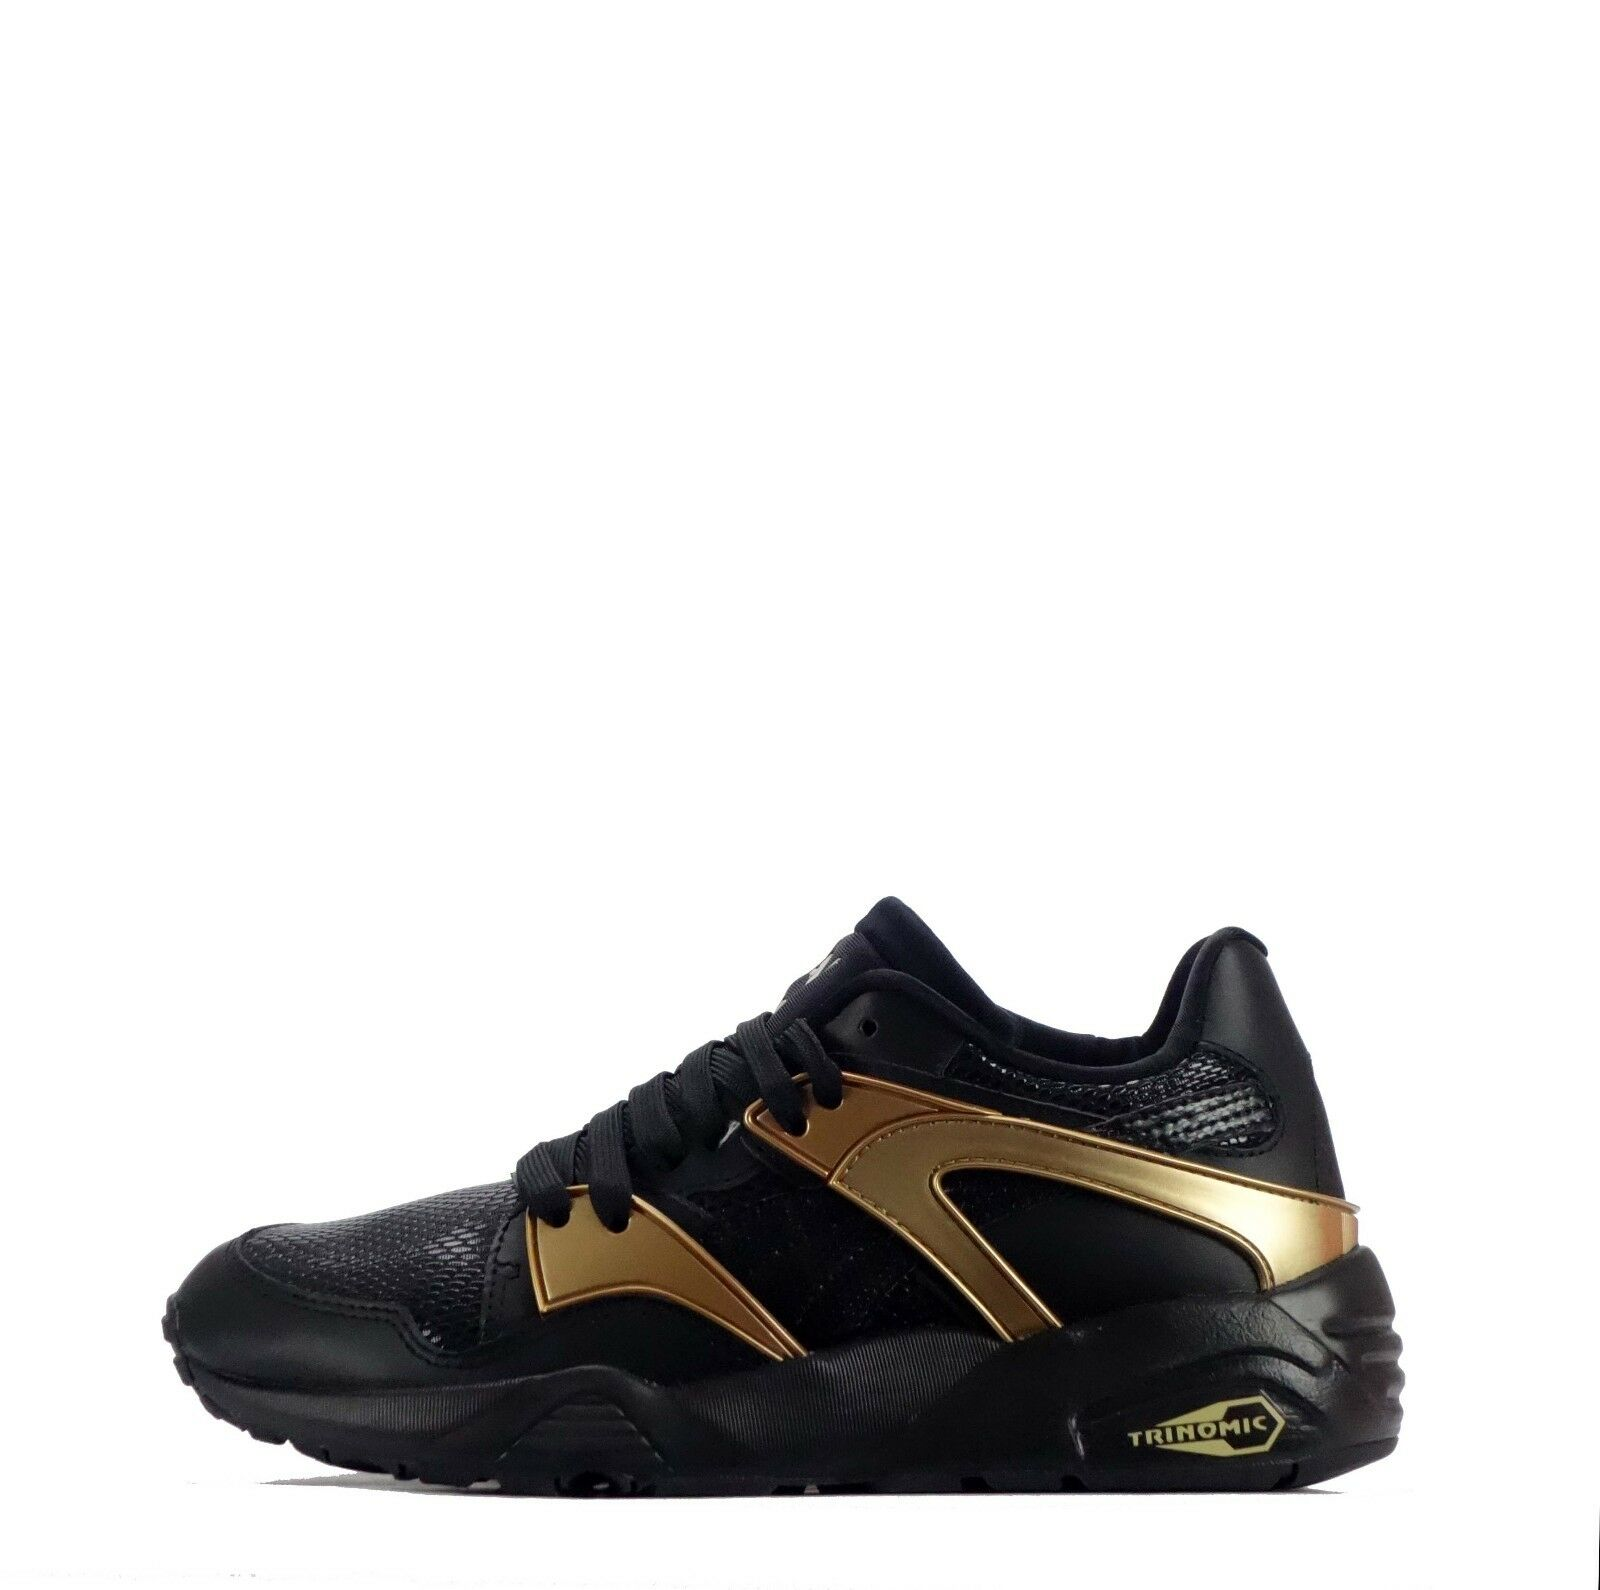 Puma Blaze gold Women's Leather shoes Black Black Black gold 653b16